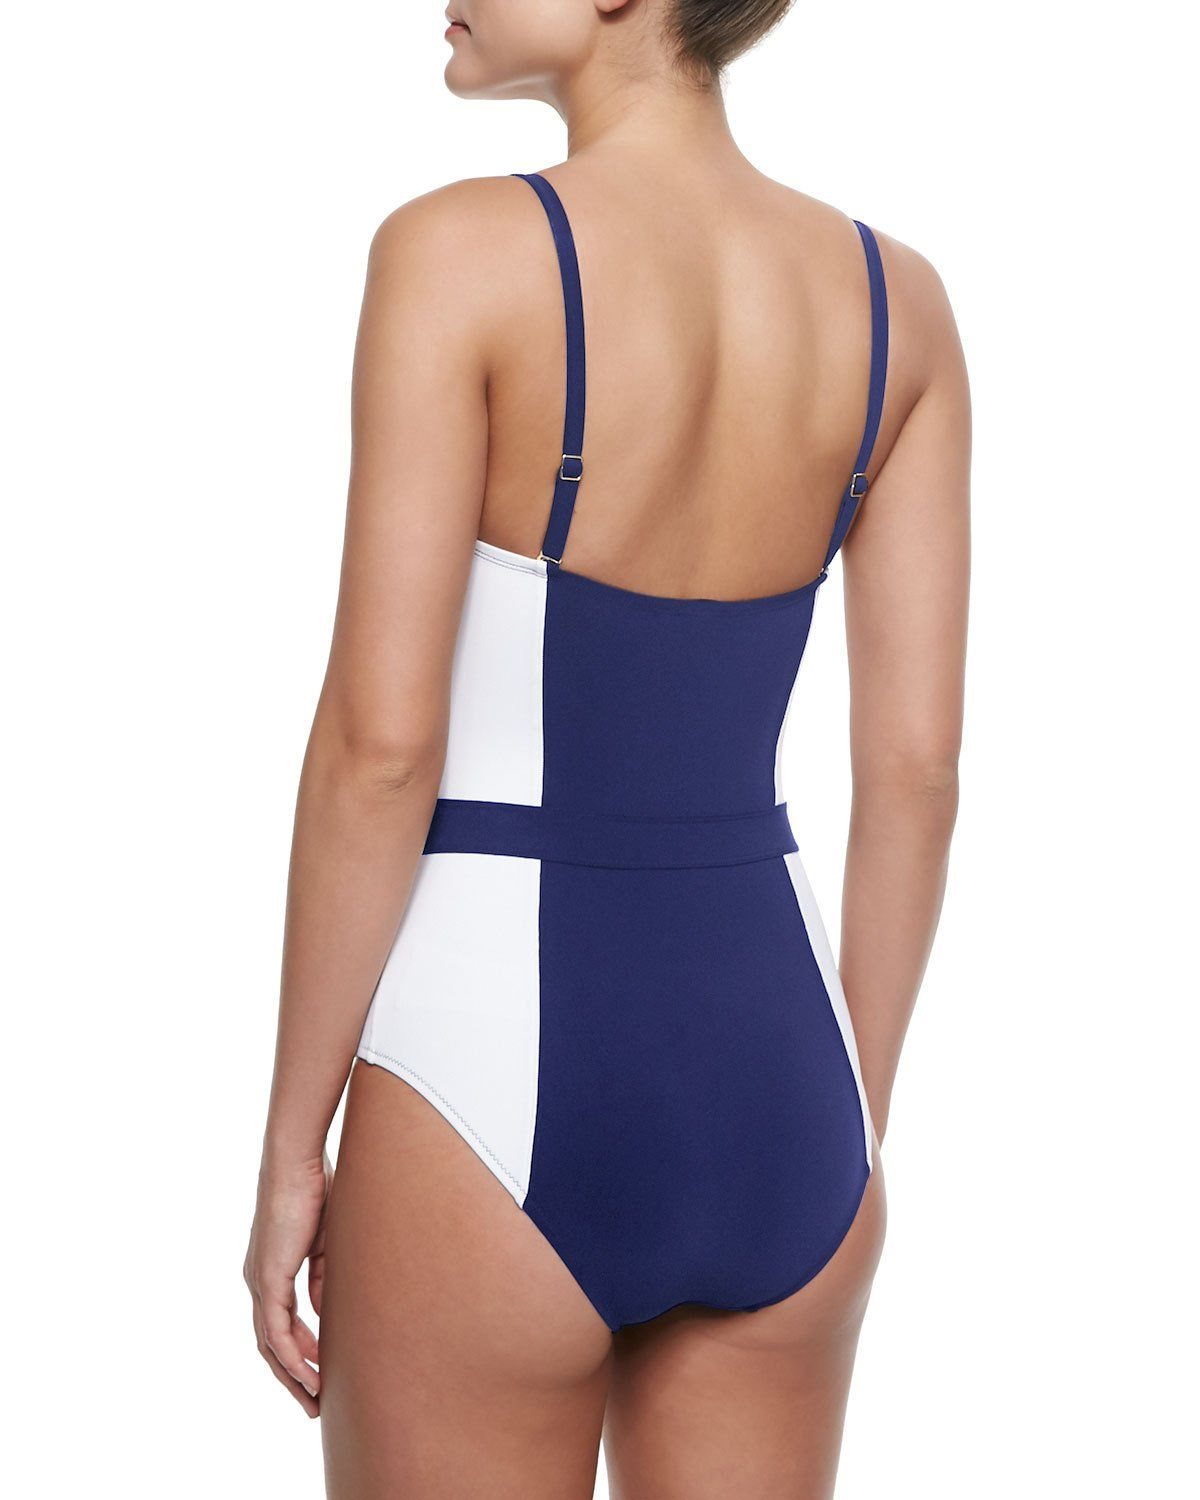 4738a8312b192 Lipsi Two-Tone One-Piece Swimsuit Navy/Ivory | Products | One piece ...